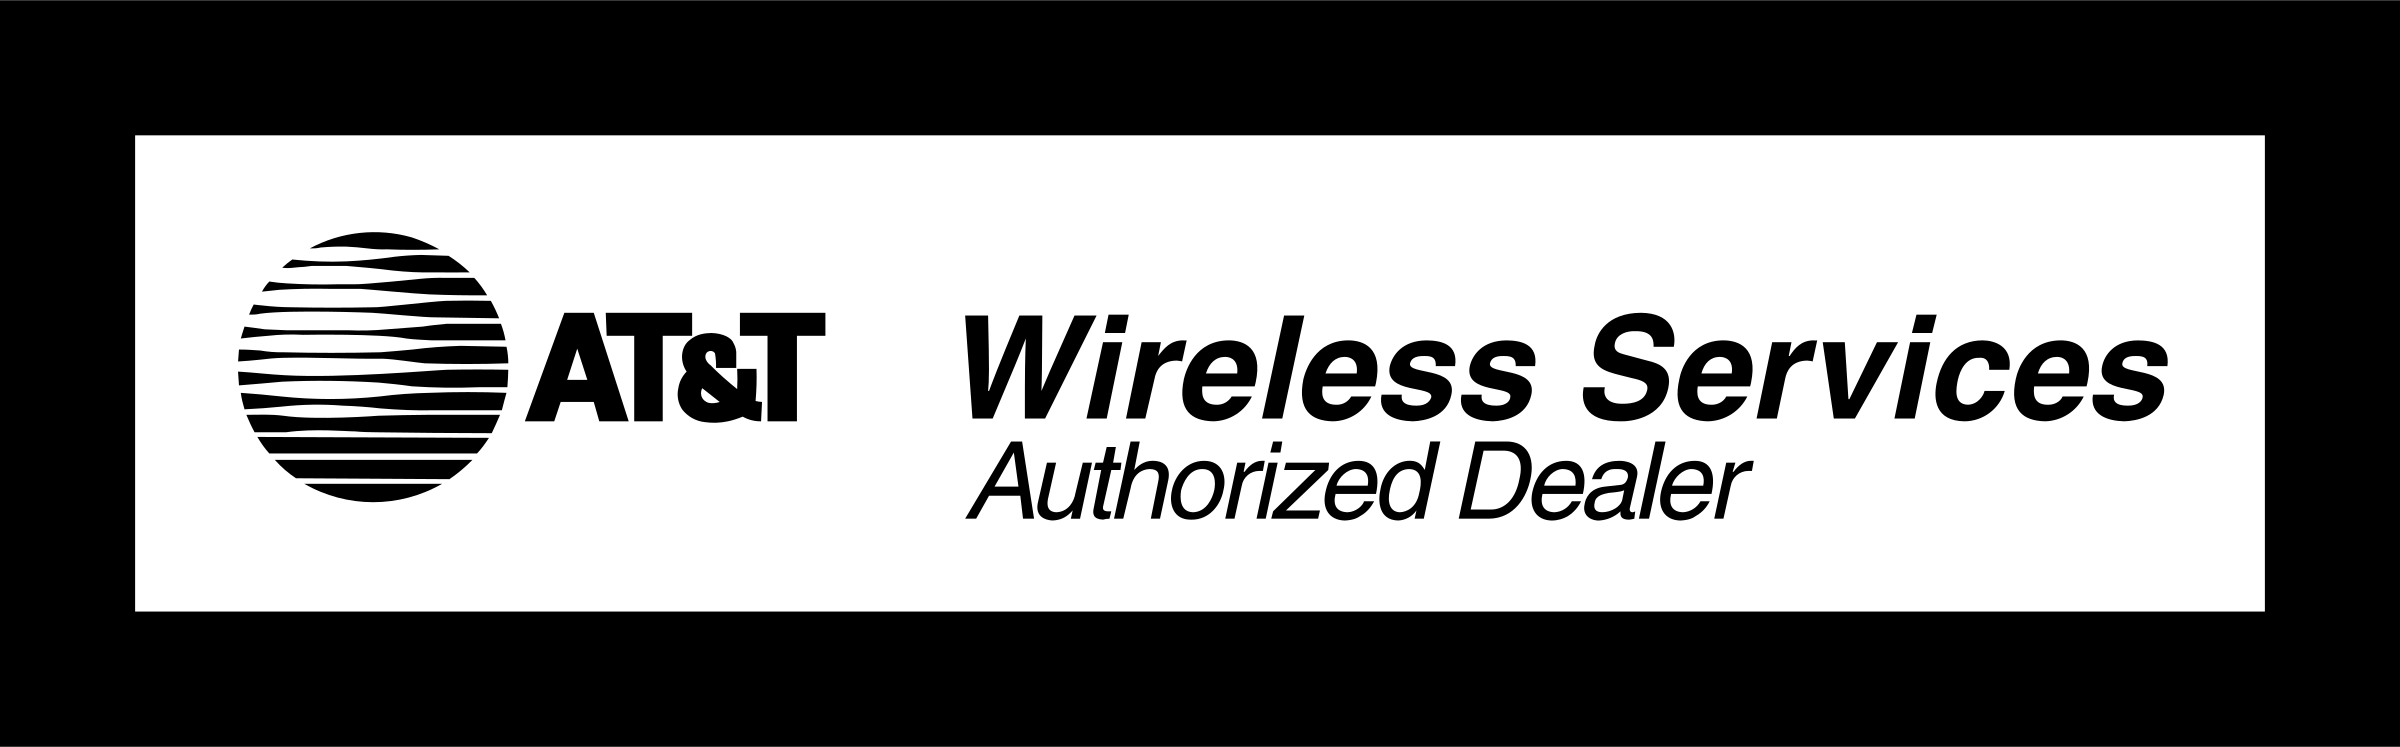 AT&T WIRELESS Logo PNG Transparent & SVG Vector.